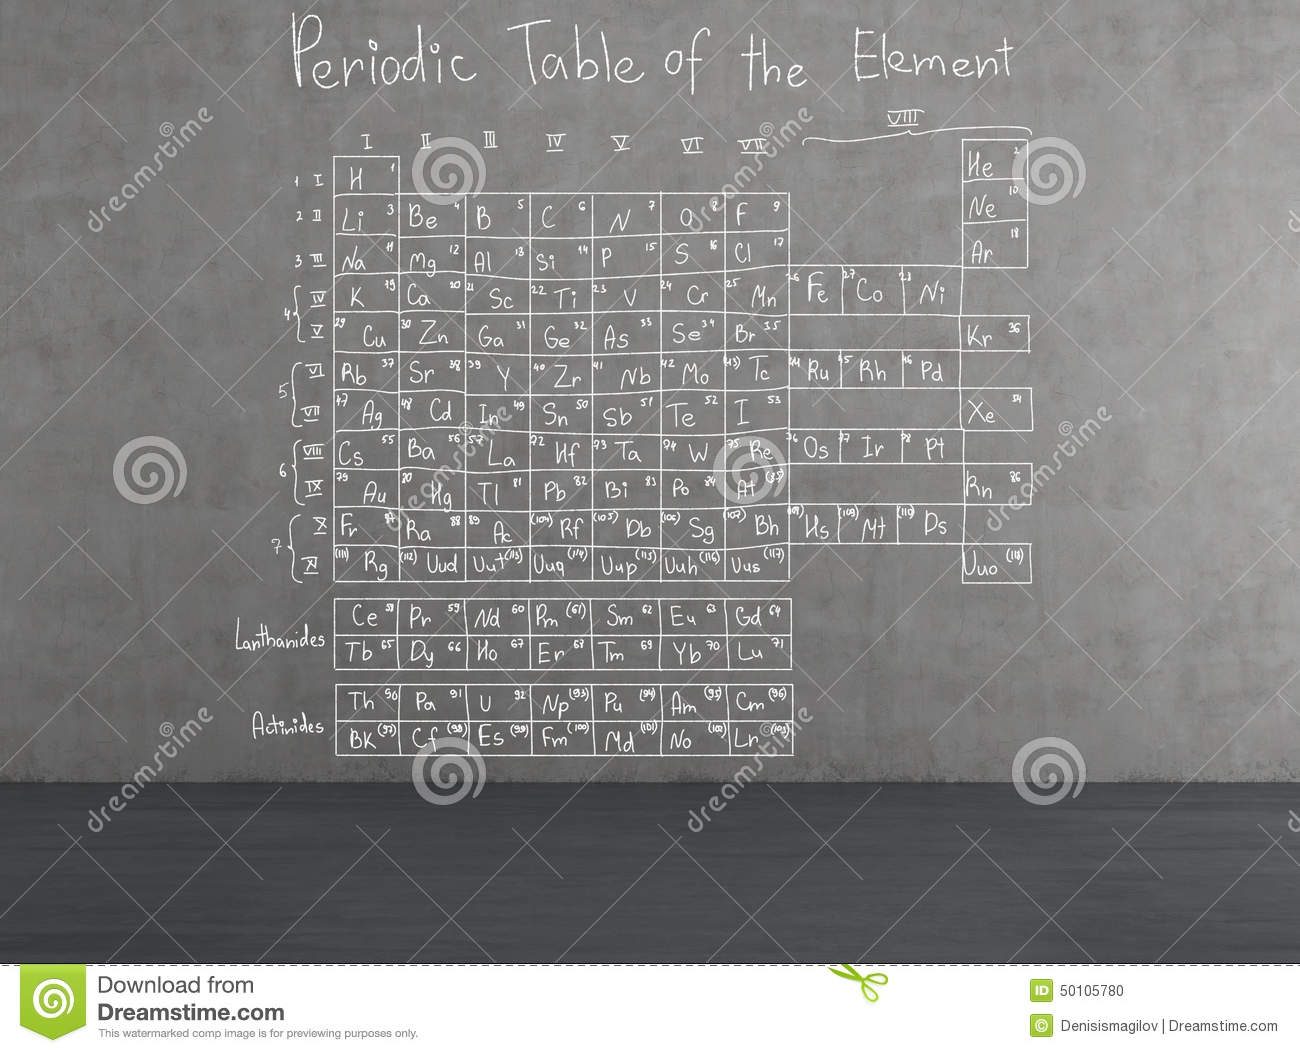 Periodic table of elements stock photo image of laboratory 50105780 download periodic table of elements stock photo image of laboratory 50105780 urtaz Gallery